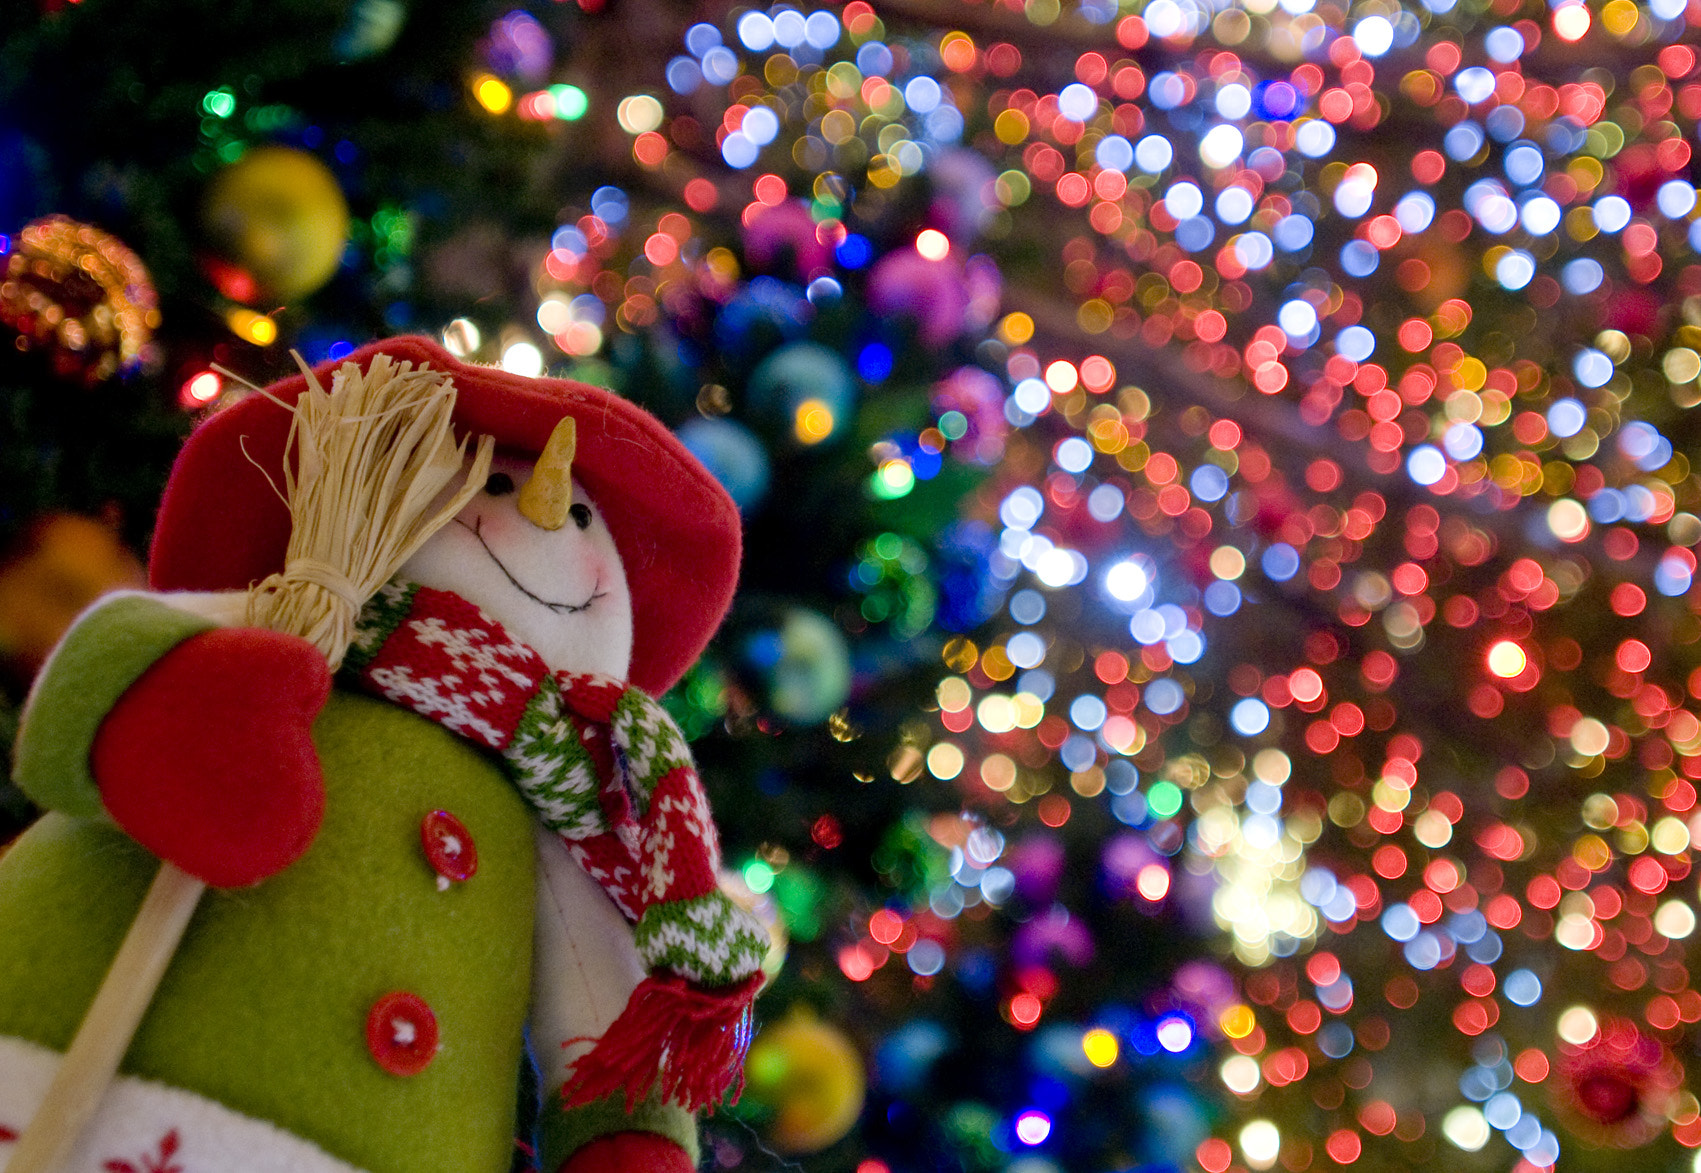 Photograph Snowman in Twinkle by Masato Sawamura on 500px